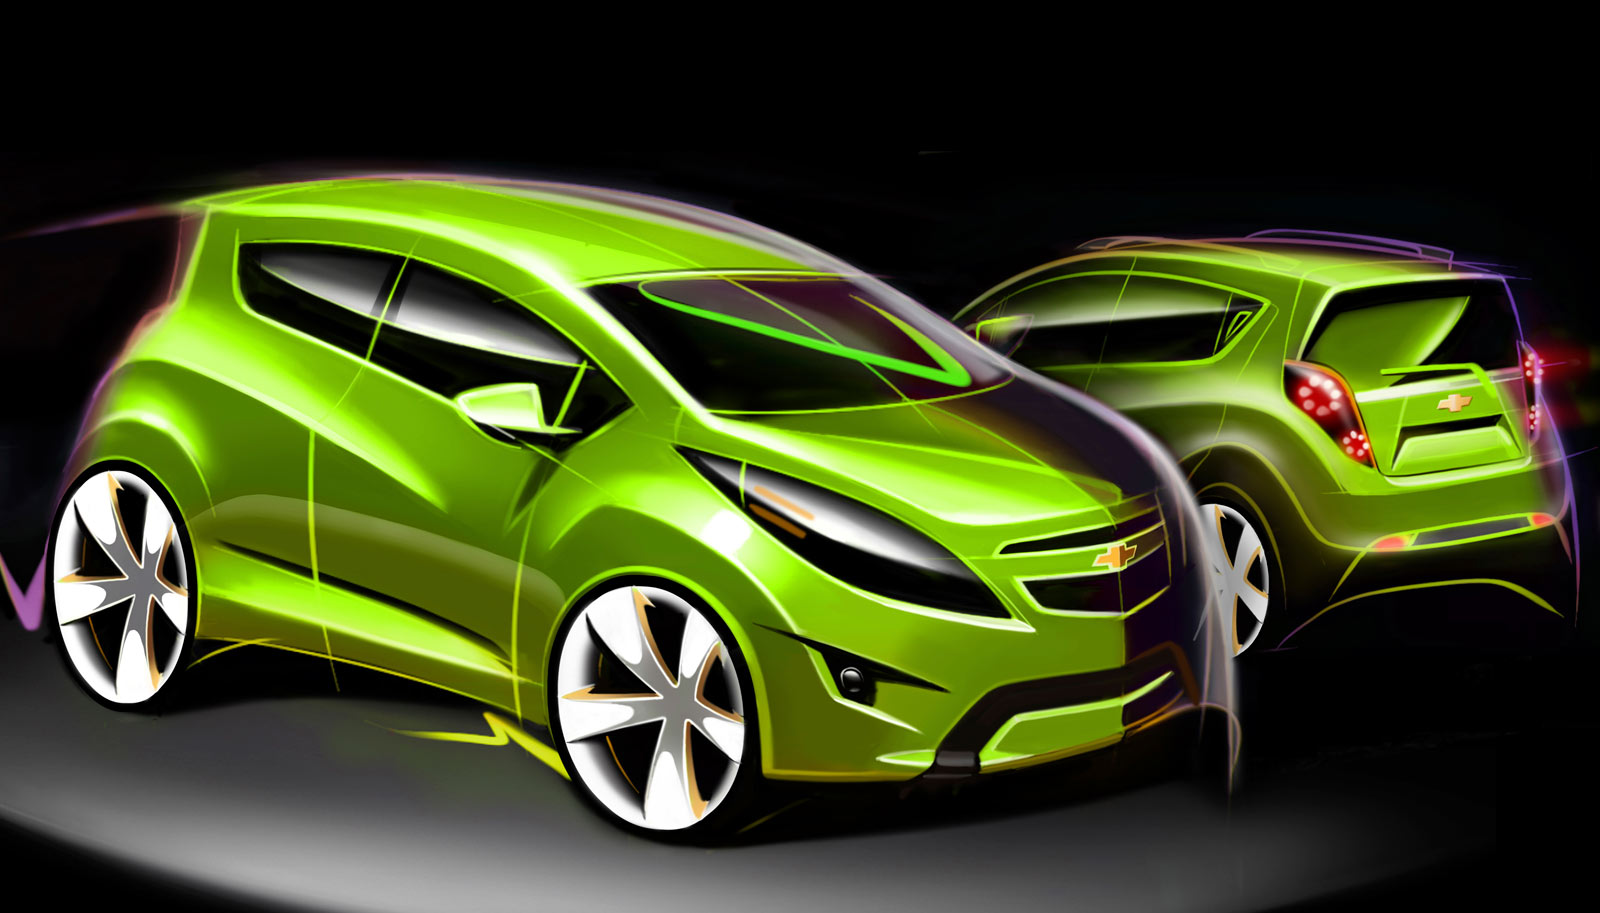 Chevrolet Spark Design Sketch - Car Body Design